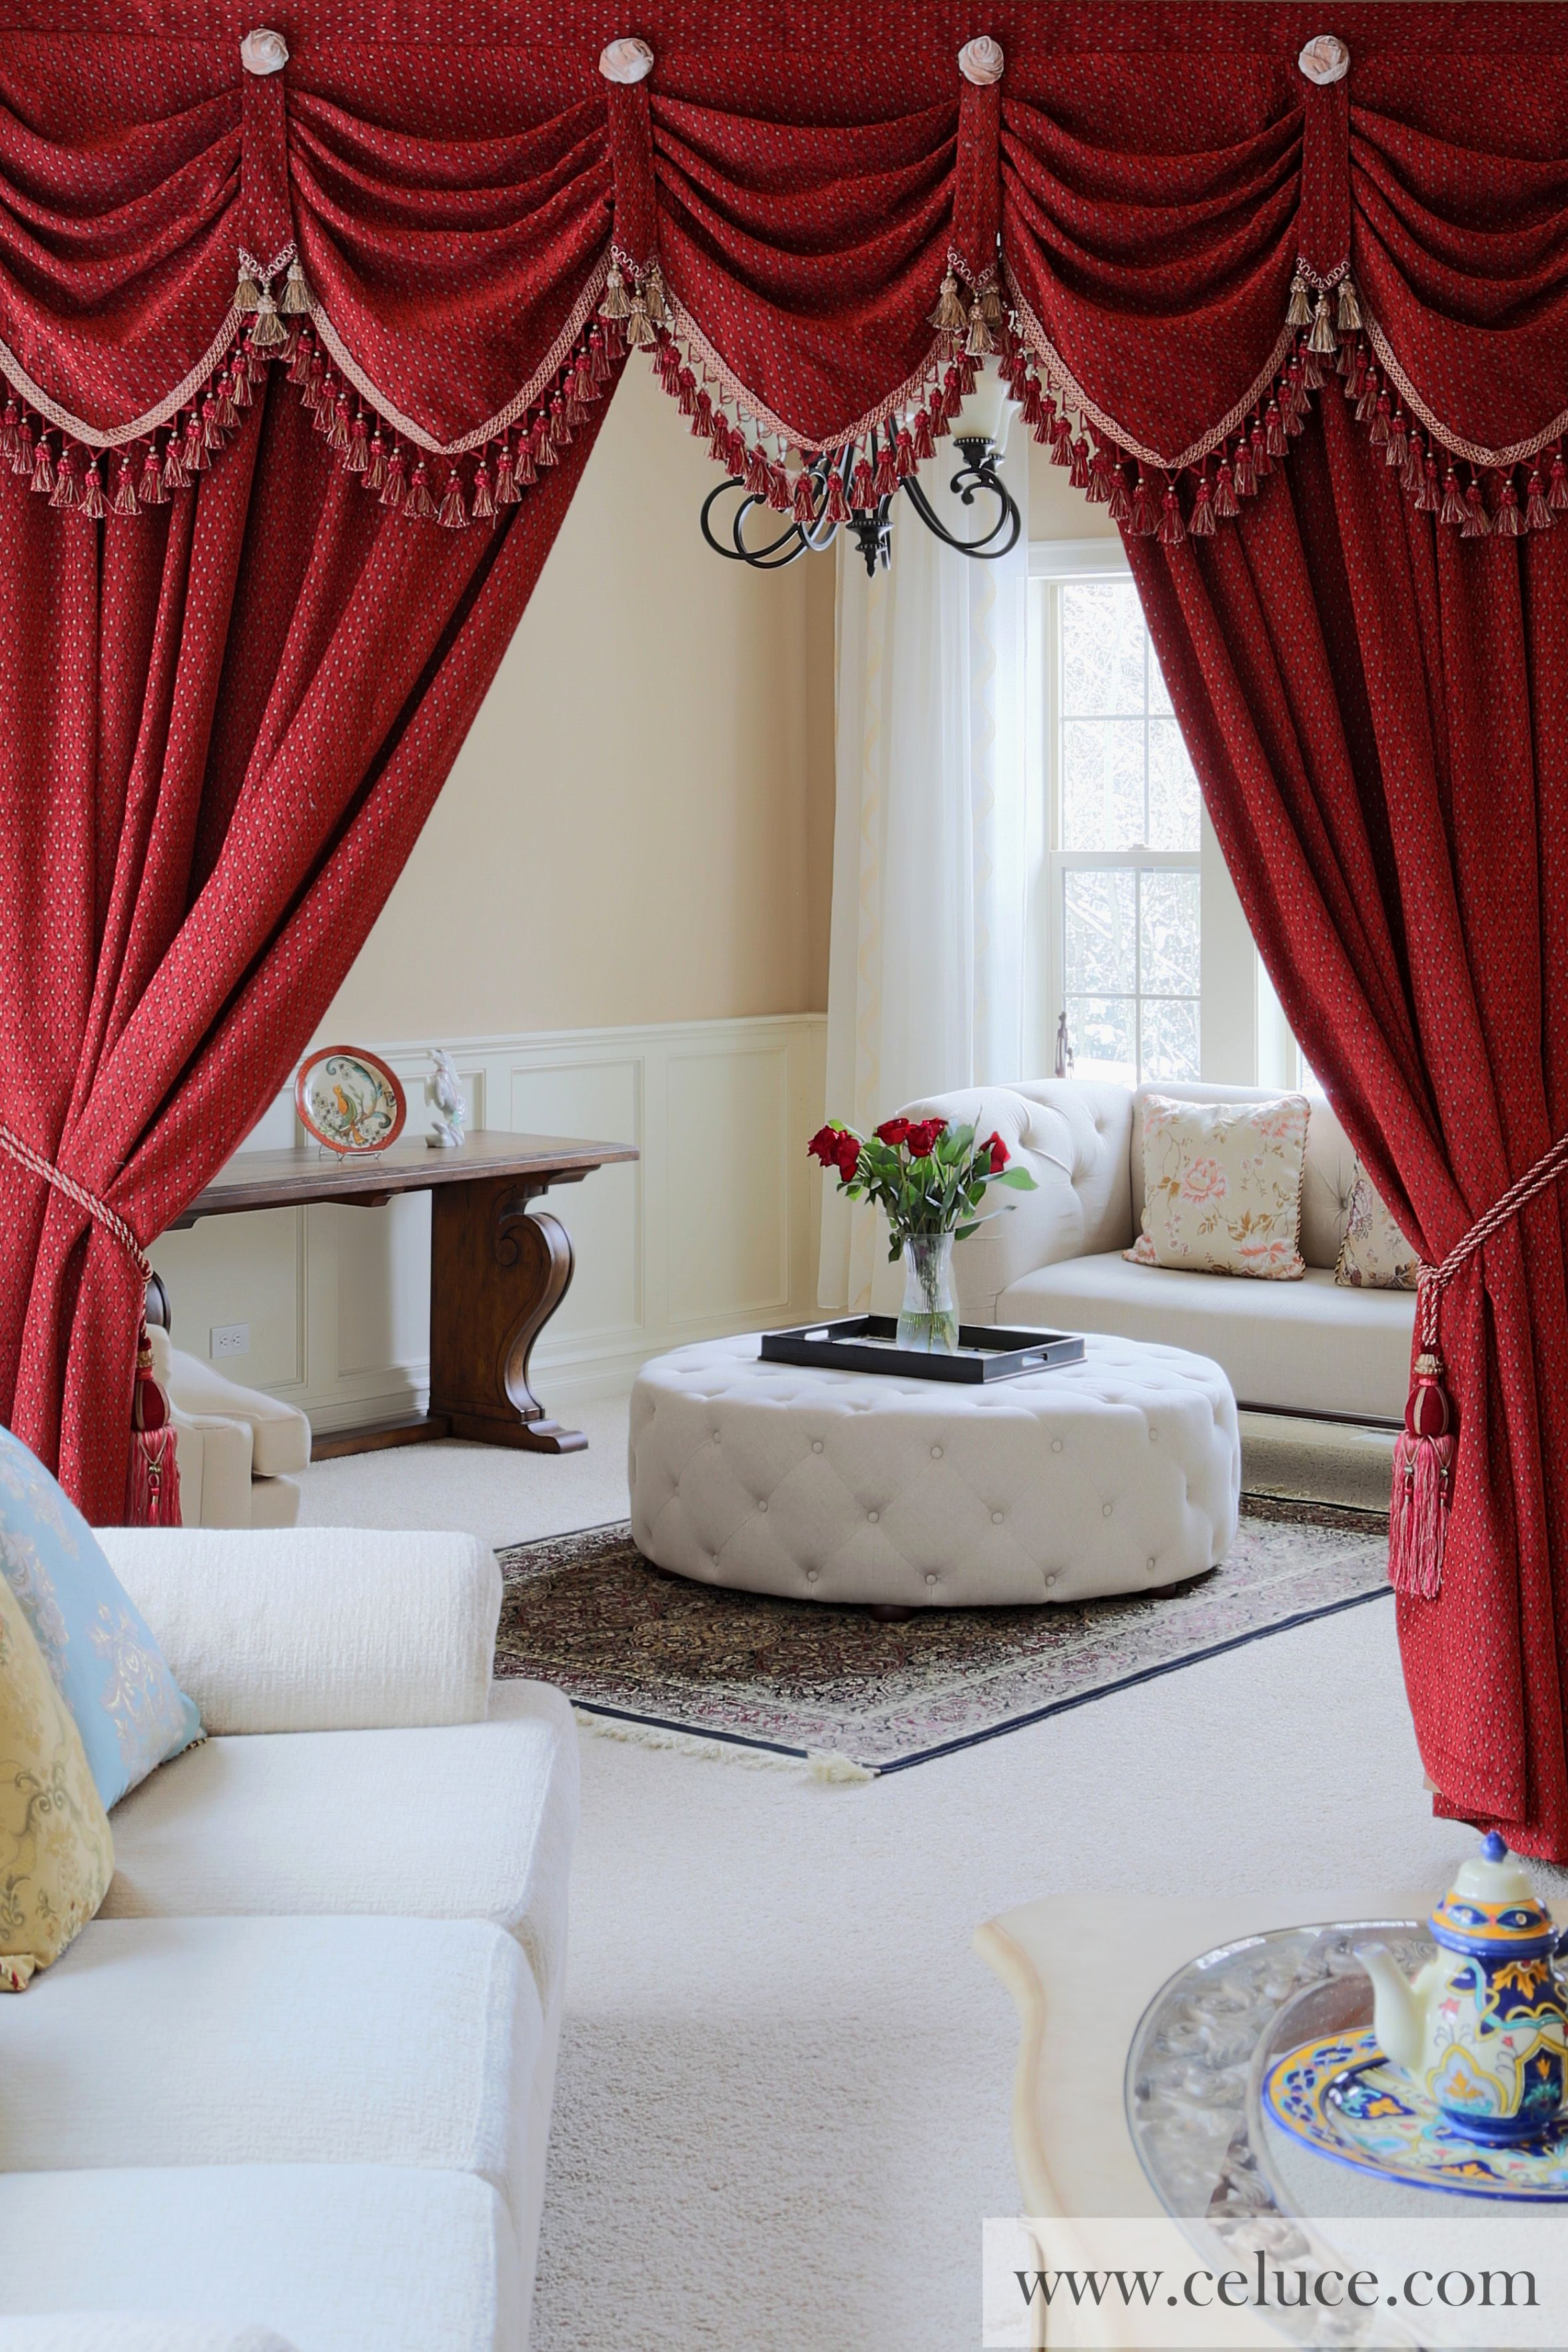 overview treatments sizes swatch pin reviews drapes lace details window lattice panels windows treatment victorian